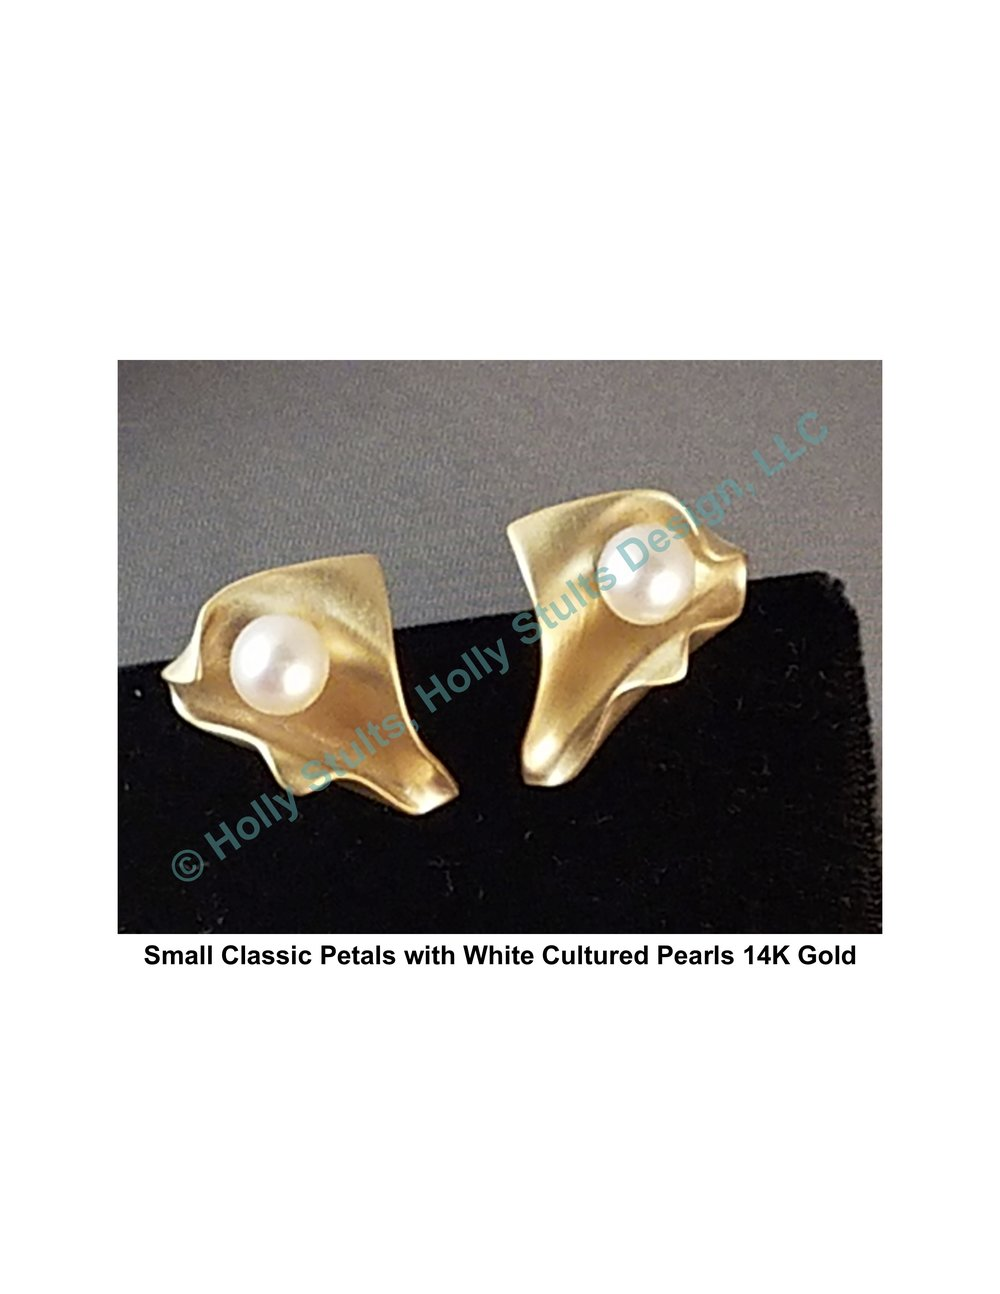 Small Classic Petals with White Cultured Pearls 14K Gold.jpg